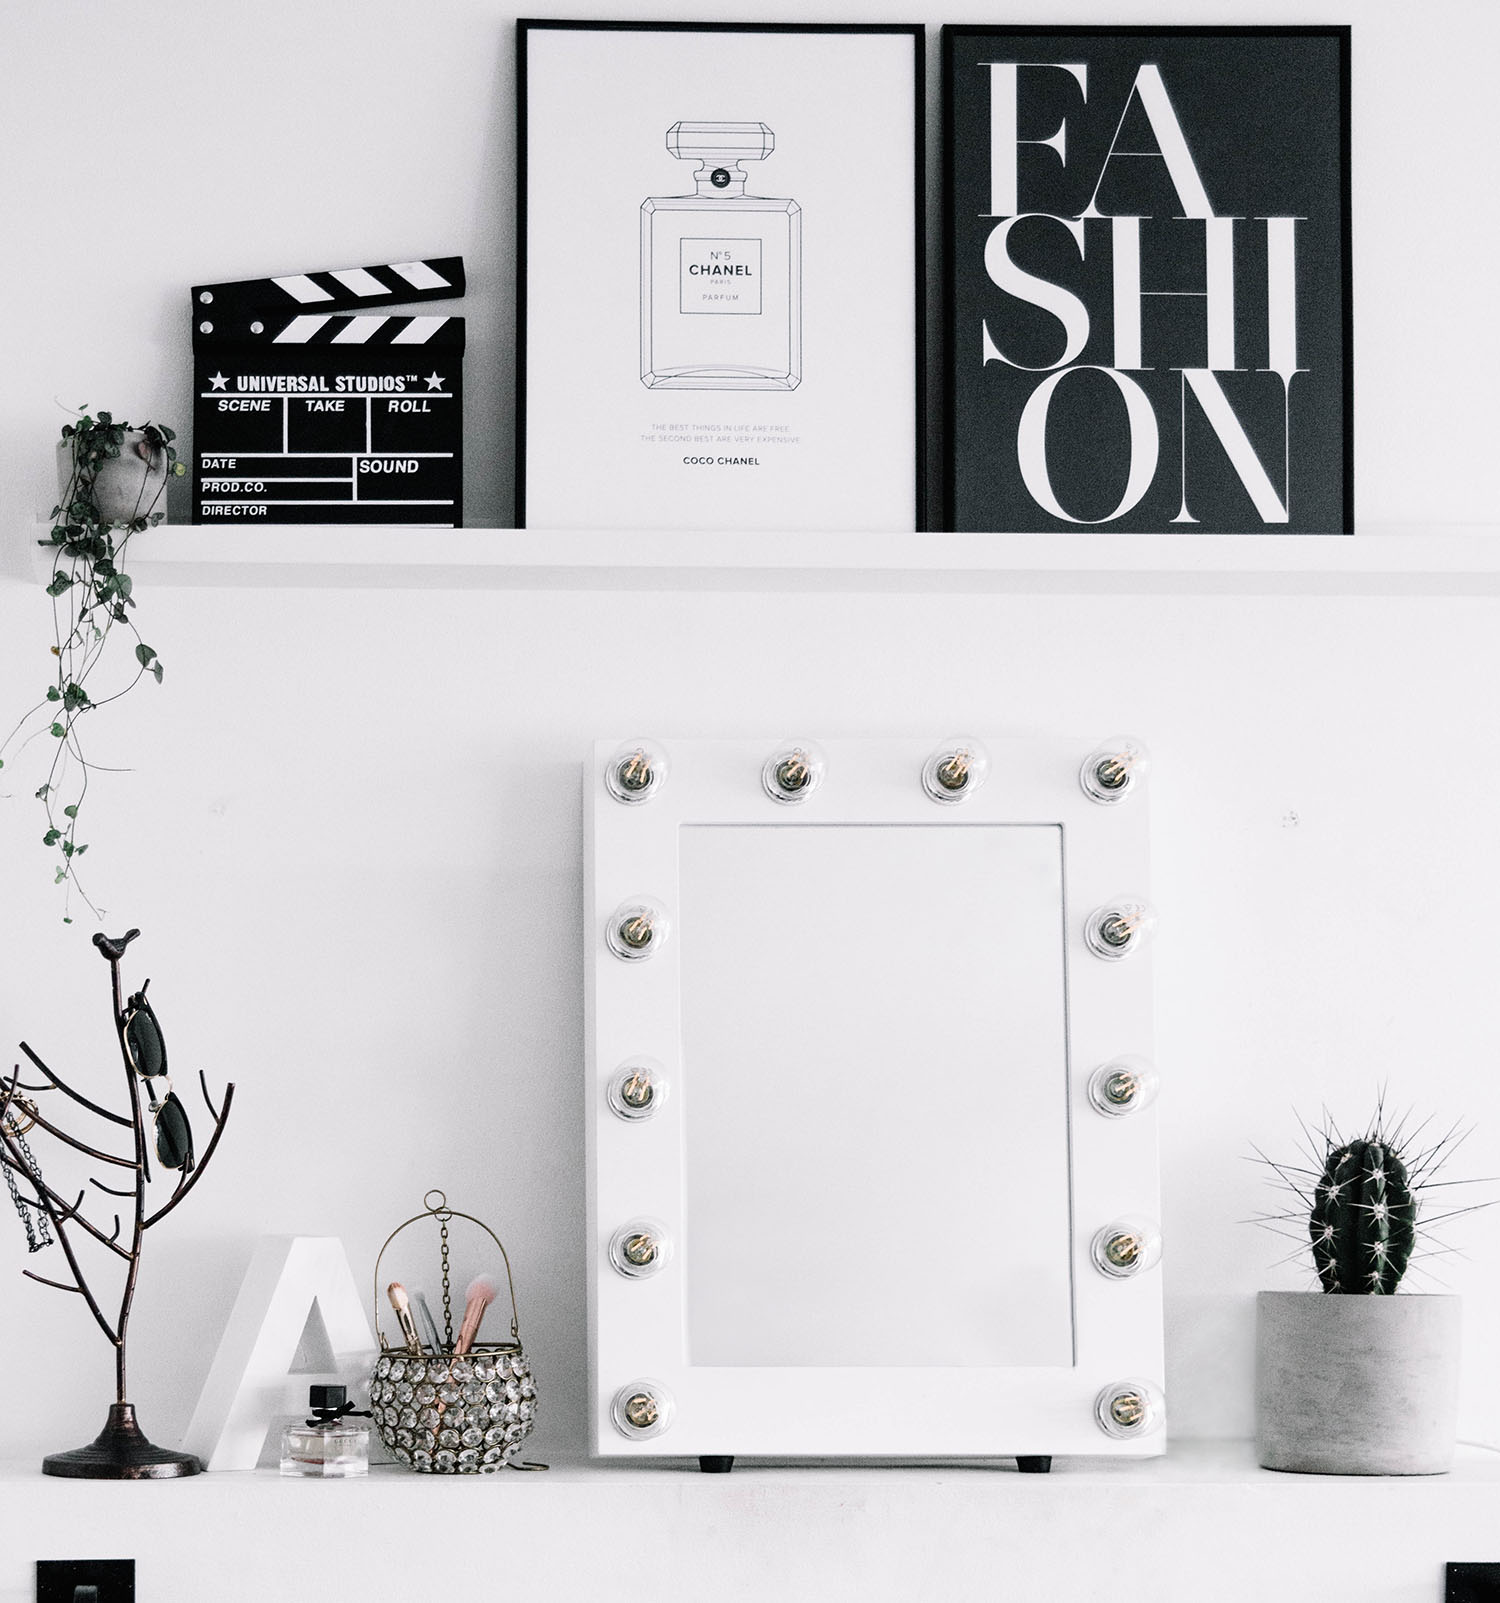 Makeup mirror with lights and Fashion & Chanel Poster - Minimalistic Interior Design